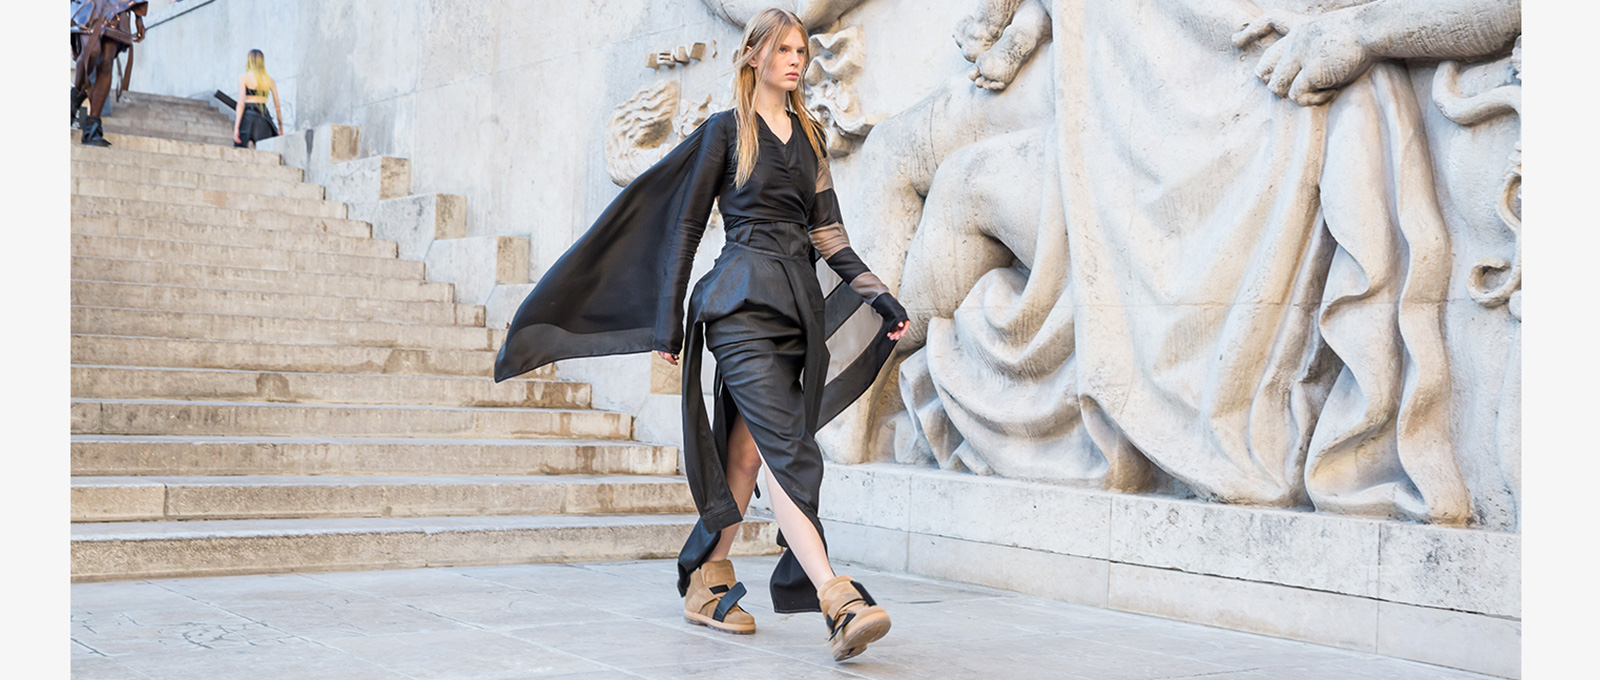 7f0446aa7007 BIRKENSTOCK AND RICK OWENS EXTEND THEIR SECOND SEASON COLLABORATION  PREMIERING WOMEN S STYLES AT THE SPRING SUMMER 2019 RICK OWENS  WOMENSWEARSHOW